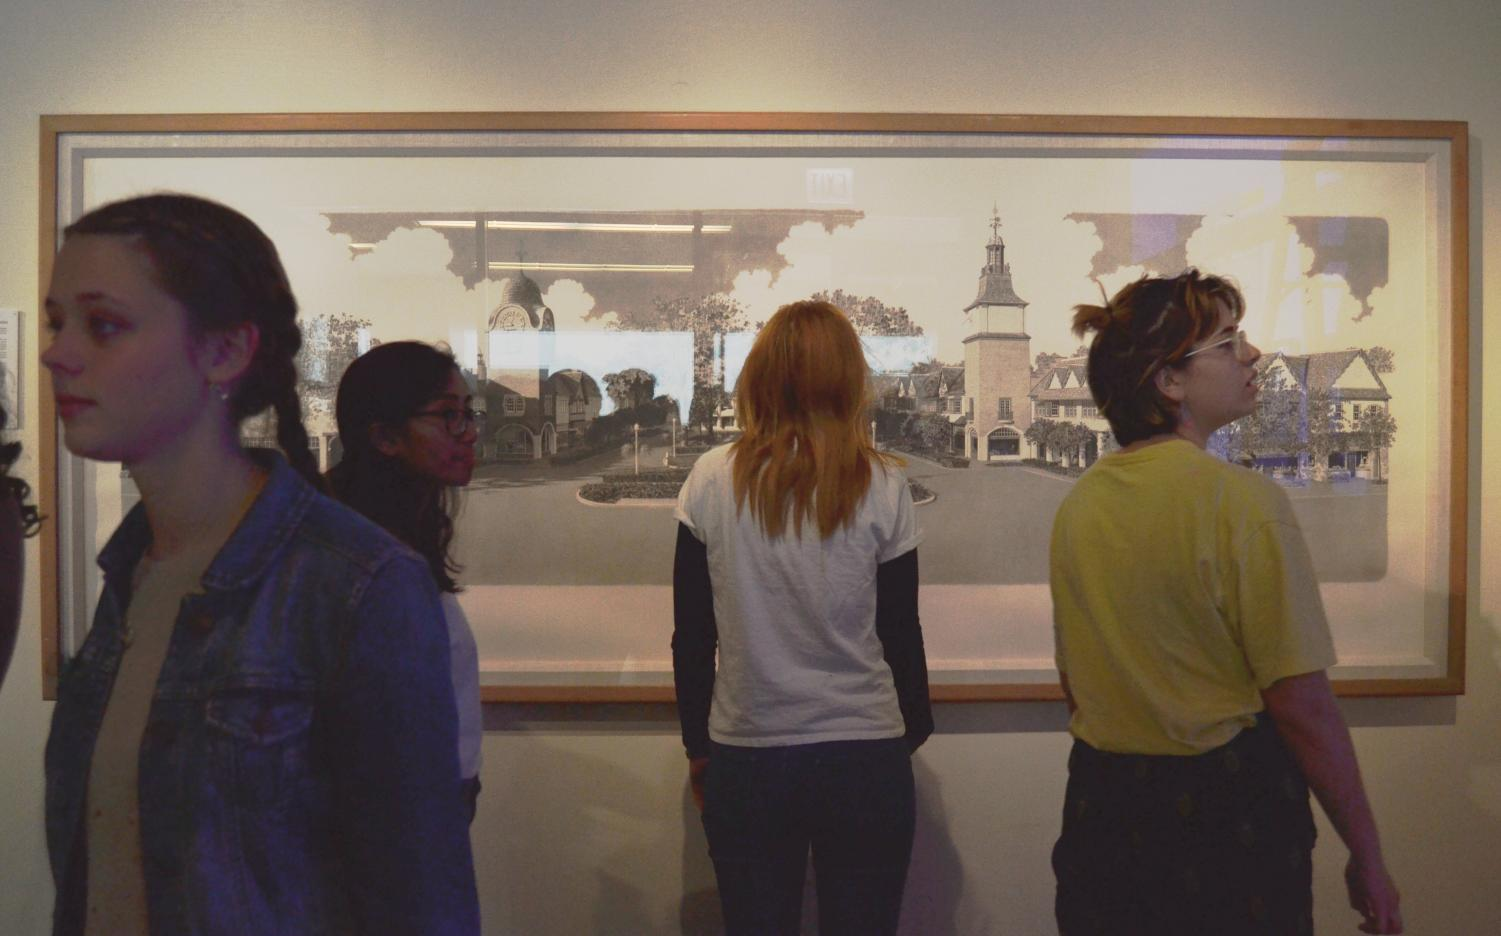 Students browse the newly opened Ann Brierly art gallery located on the second floor of the west wing